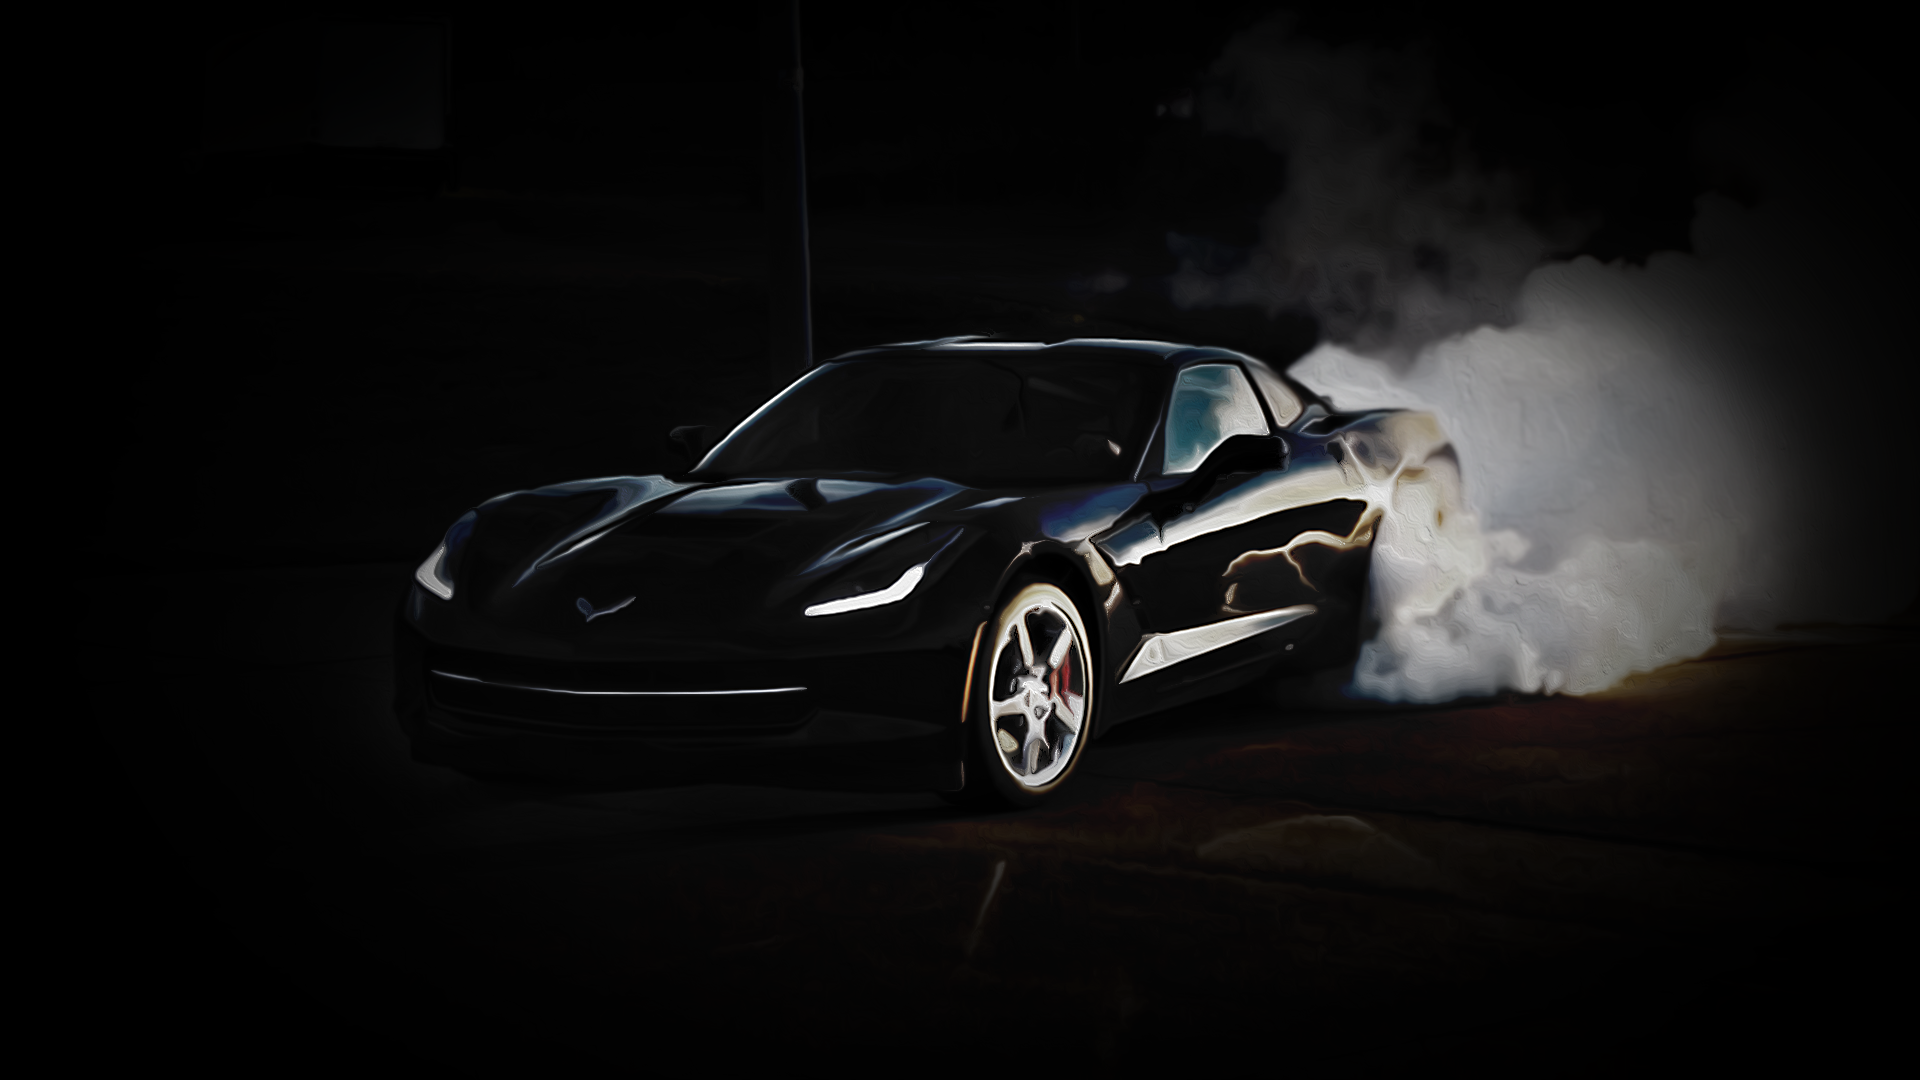 Corvette C7 Wallpaper by MaritimeCanuck on DeviantArt